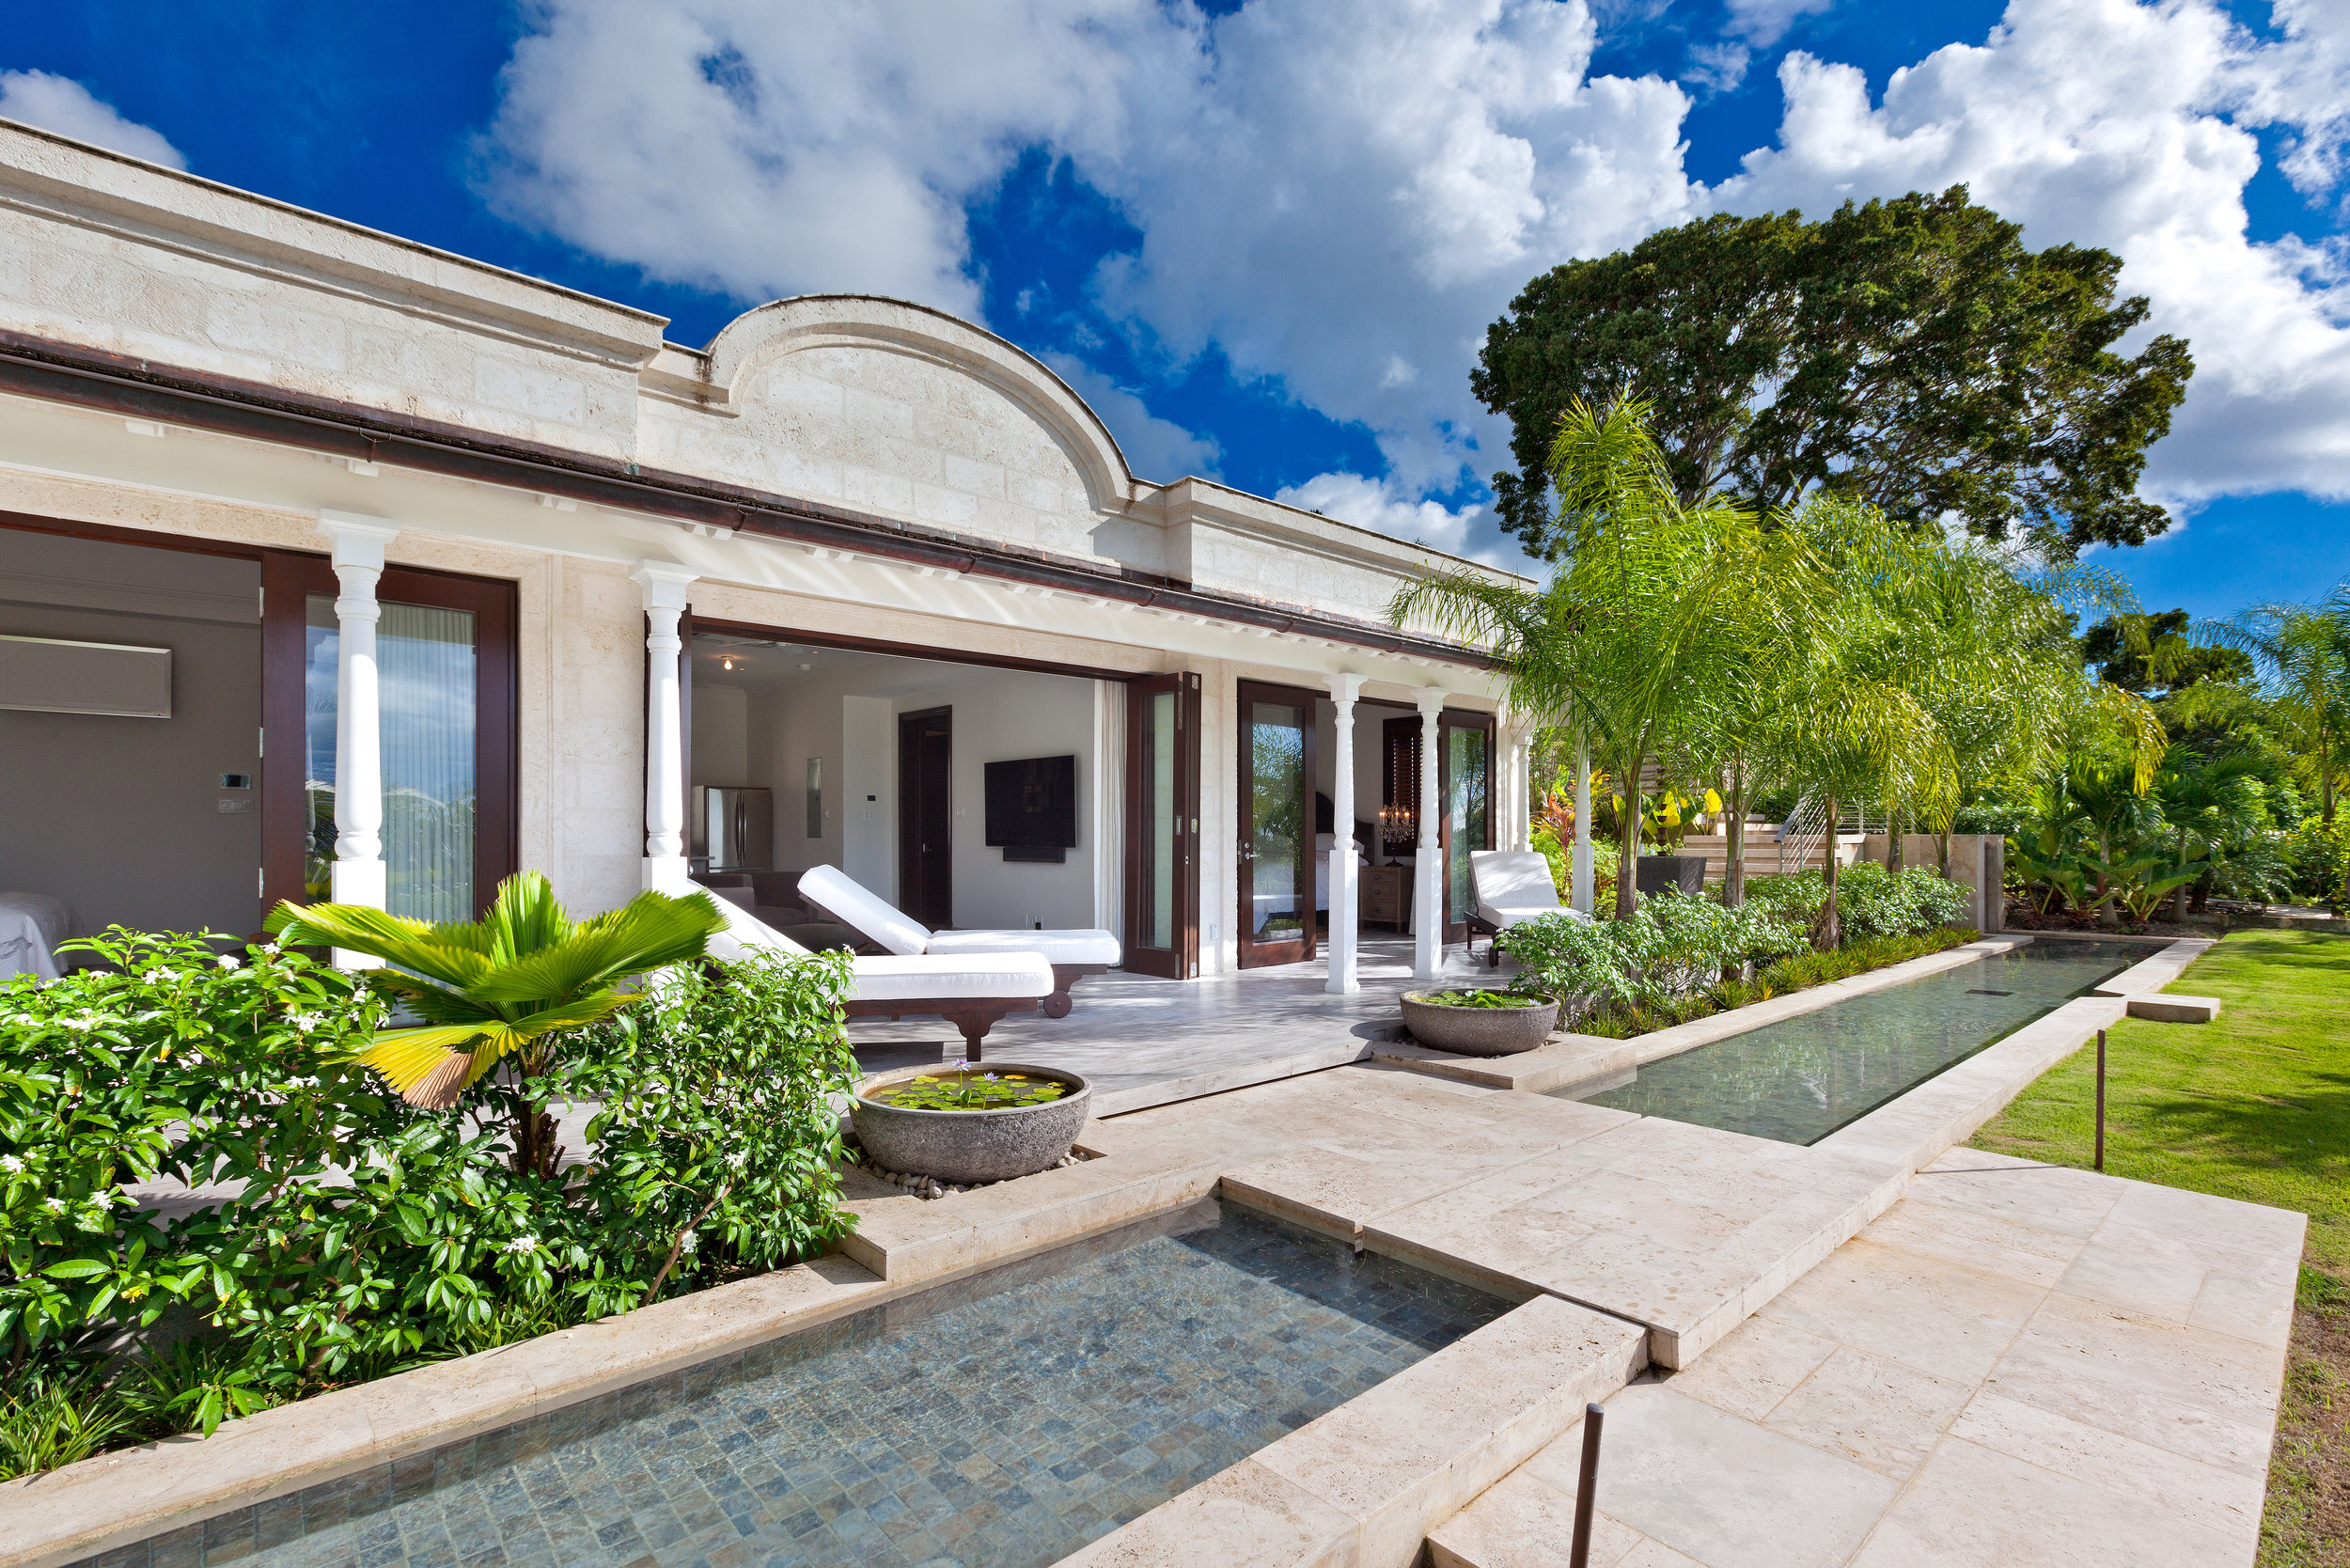 Landscapes designed by Andre Kelshall at a luxury villa in Barbados